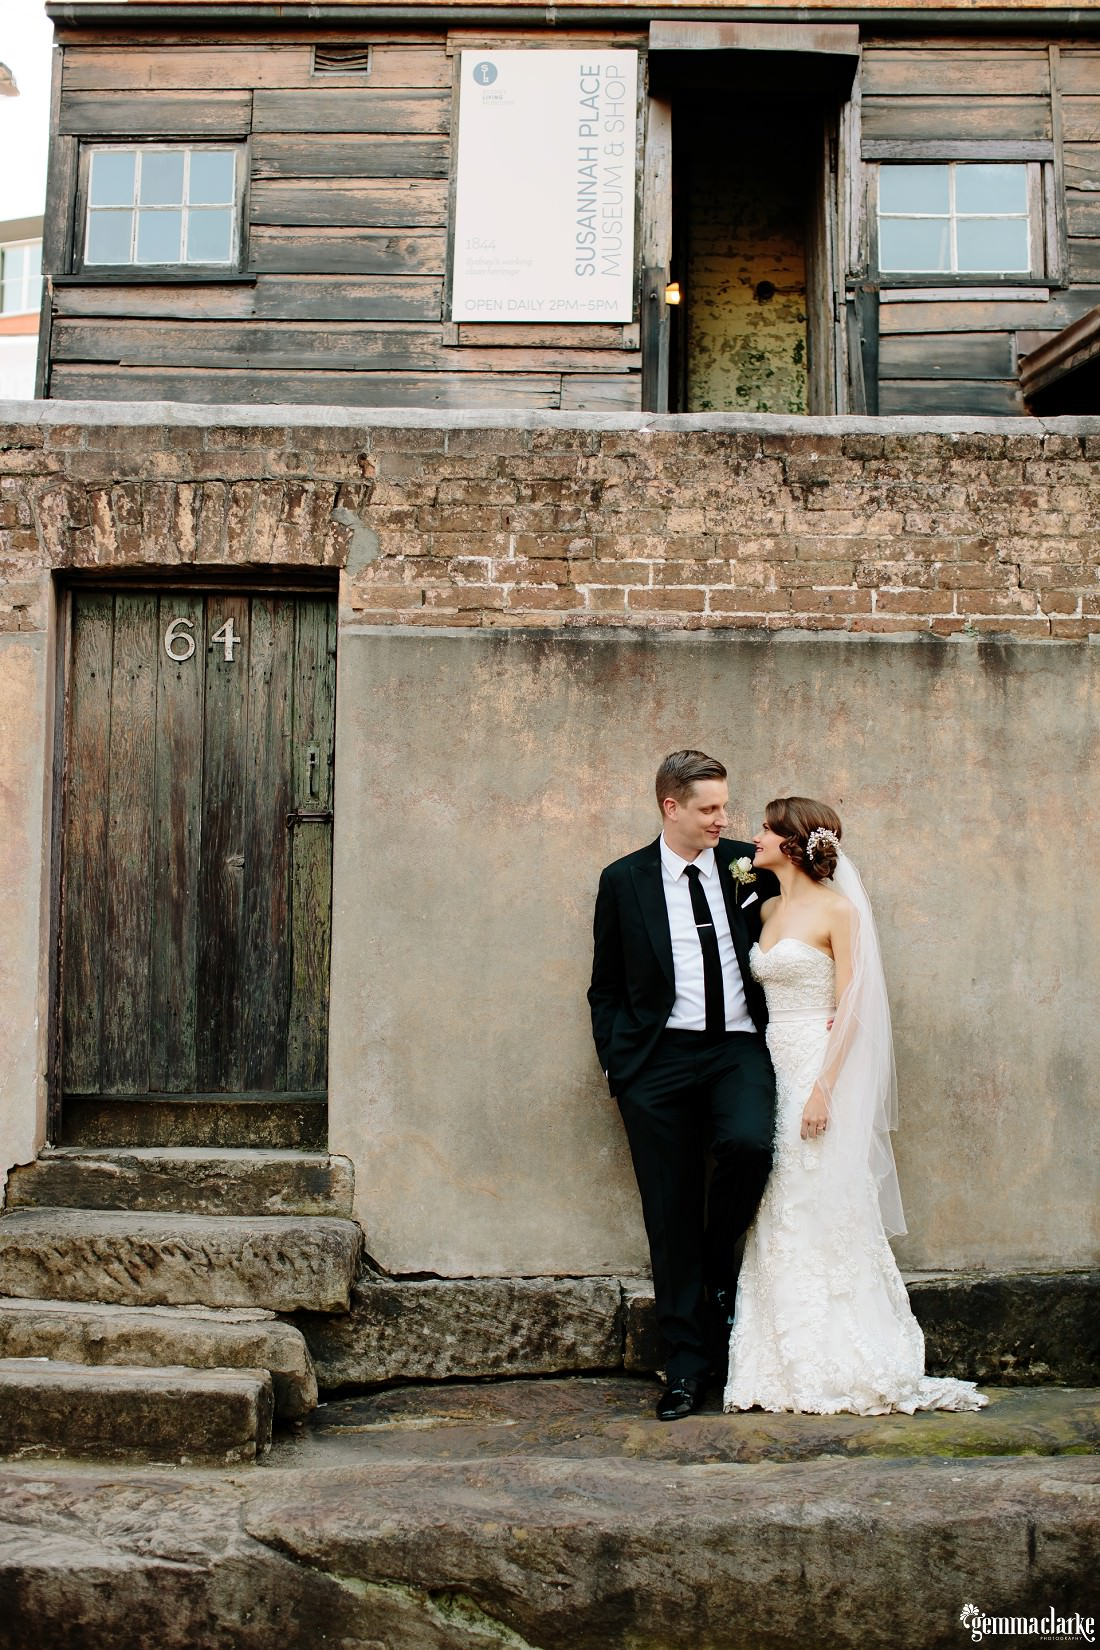 A bride and groom standing close and looking into each others eyes as they stand in front of a stone wall in an alley way